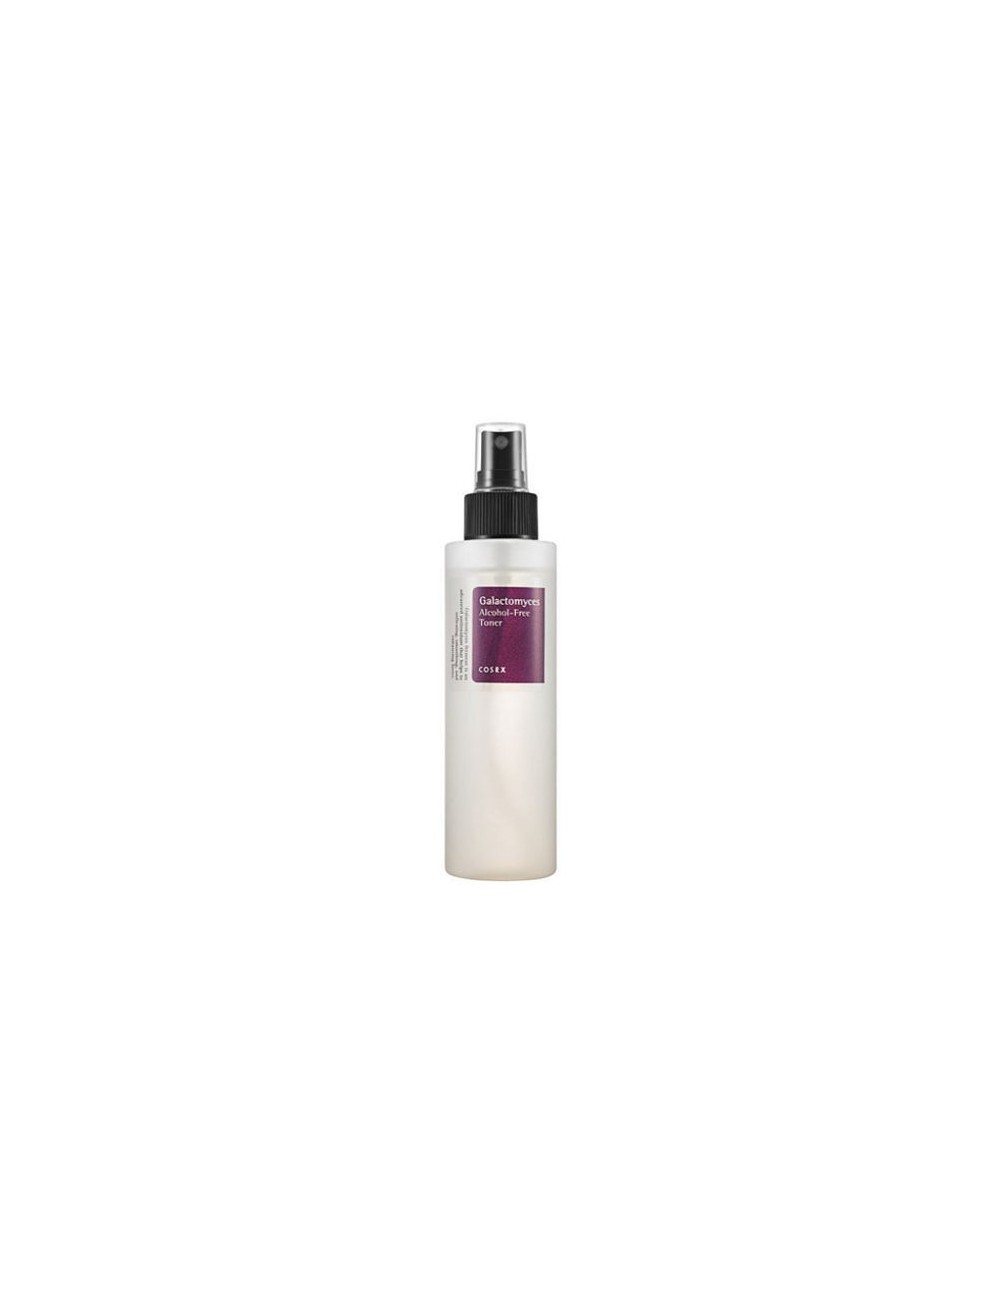 Tónico sin Alcohol COSRX Galactomyces Alcohol-Free Toner